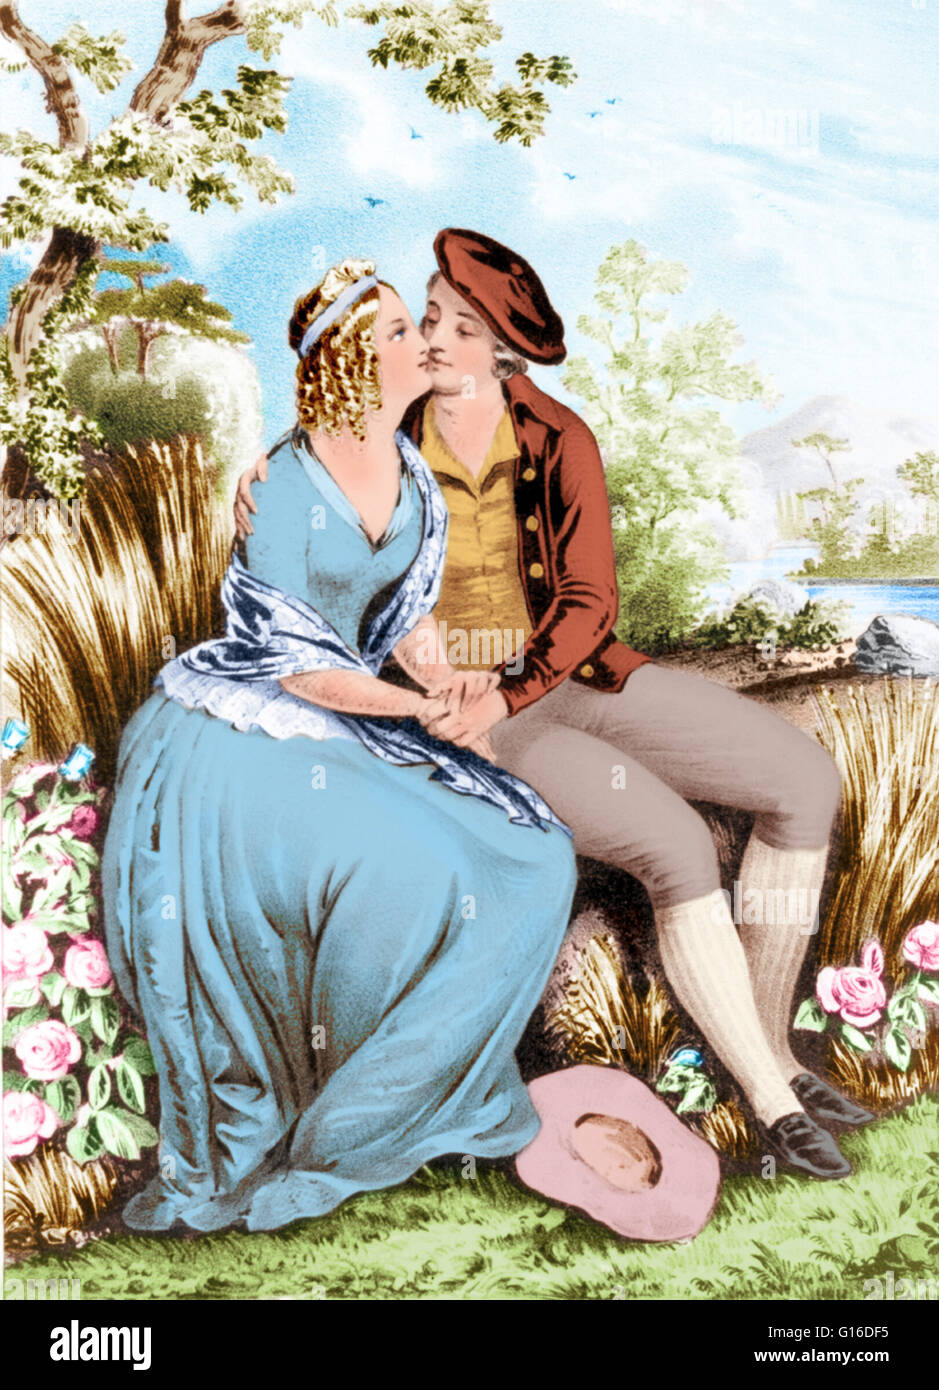 Lithograph of Robert Burns and Mary Campbell sitting in a woodland setting, holding hands, and kissing. Robert Burns - Stock Image